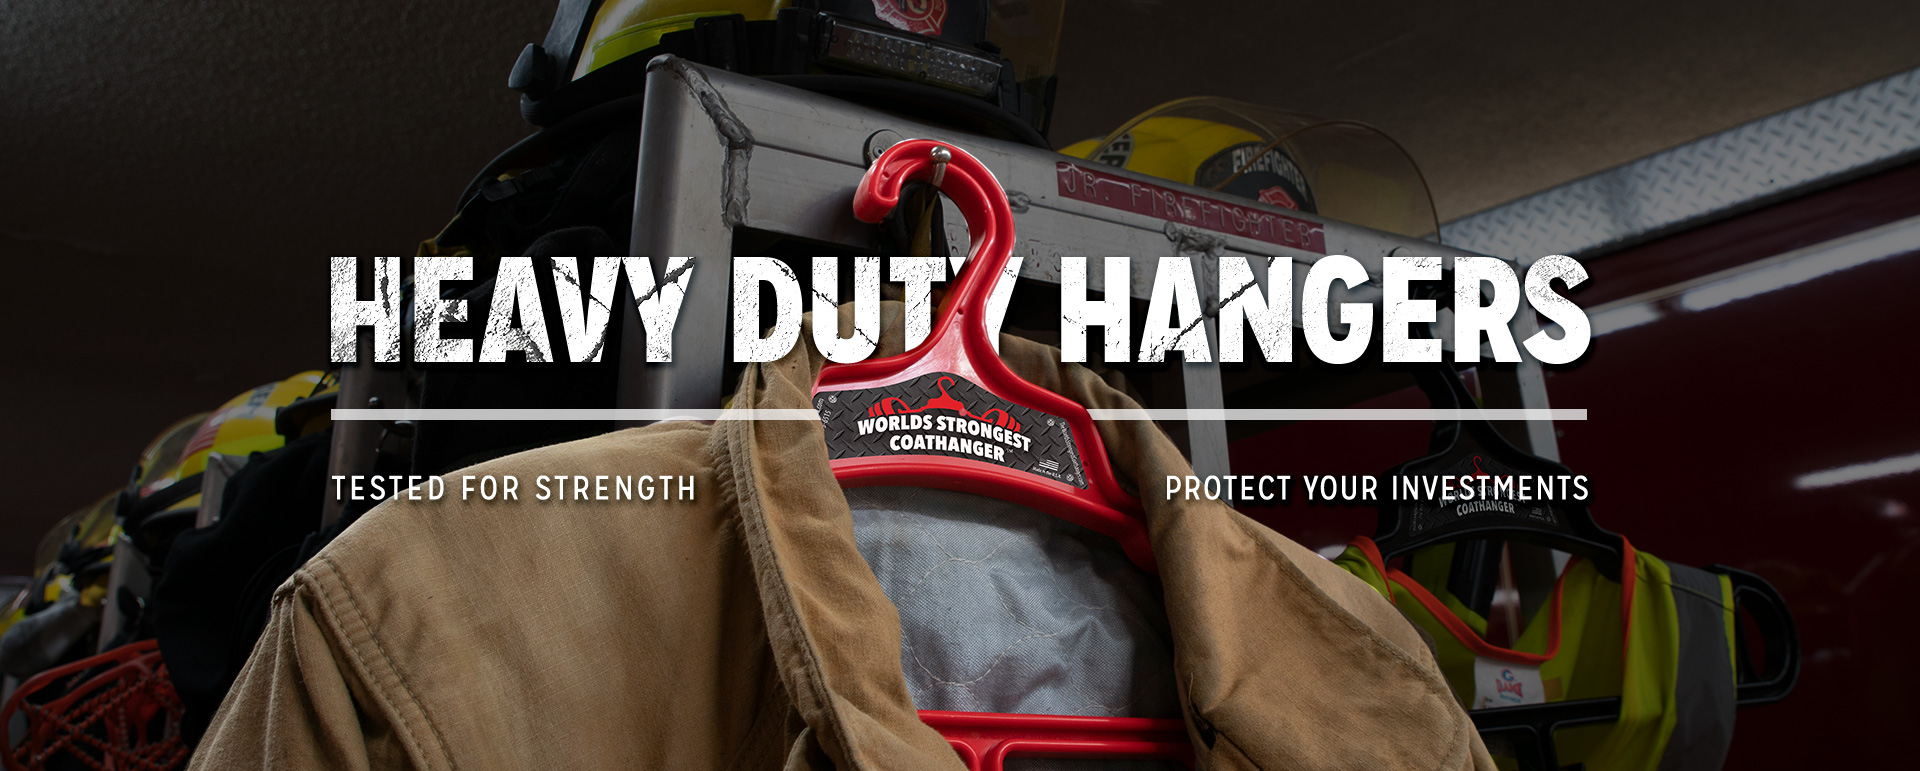 Firefighter Heavy Duty Hangers